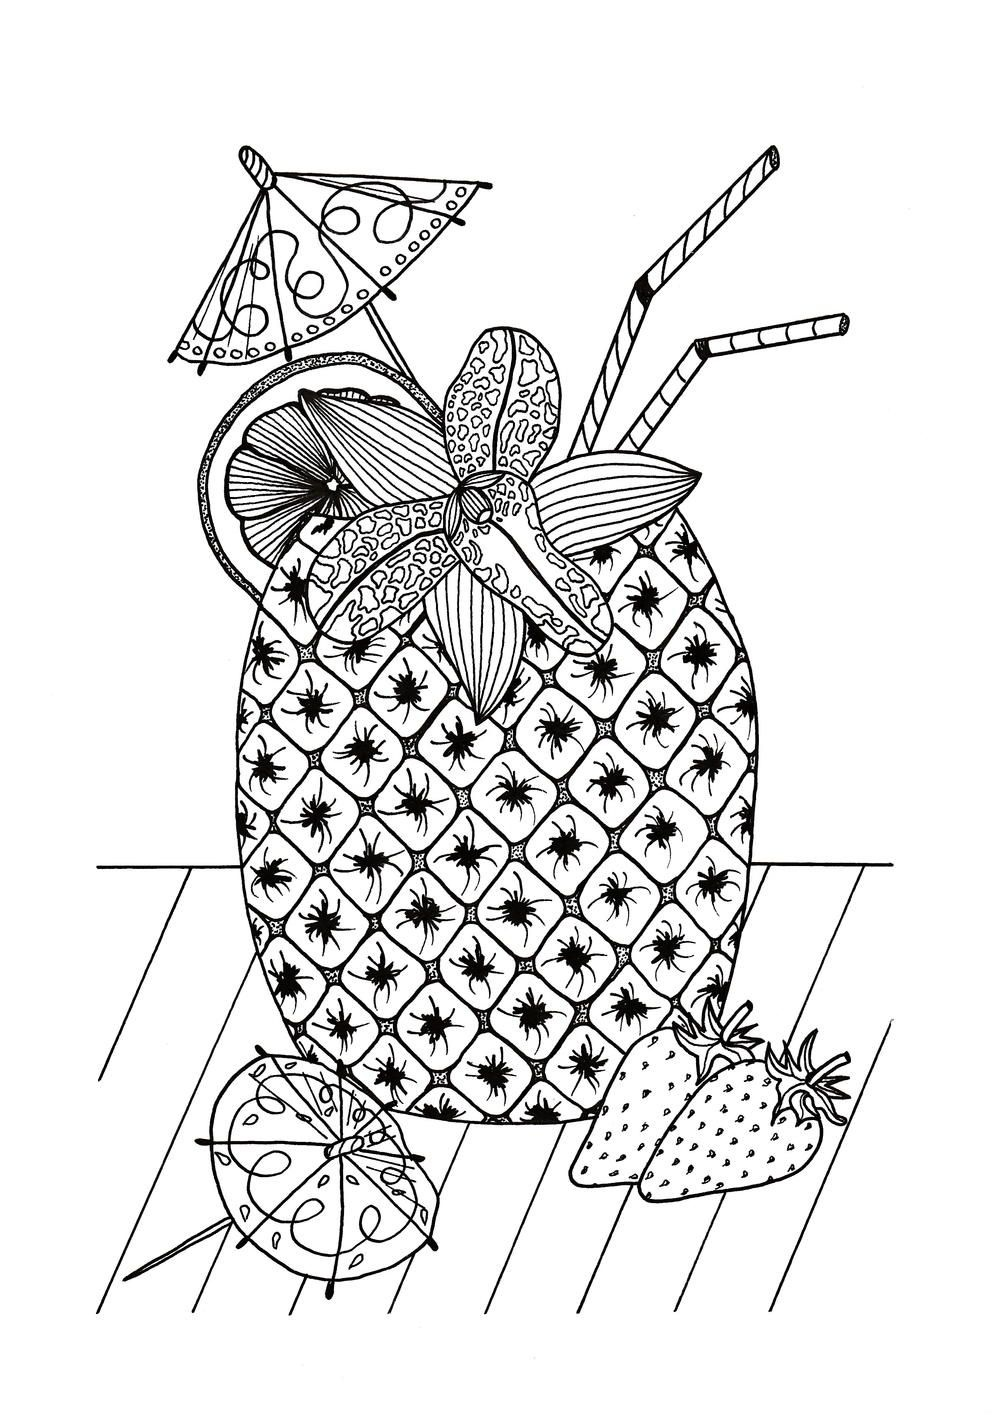 Tropical Island Cocktail Coloring Page | Free Adult Coloring Book - Free Printable Summer Coloring Pages For Adults